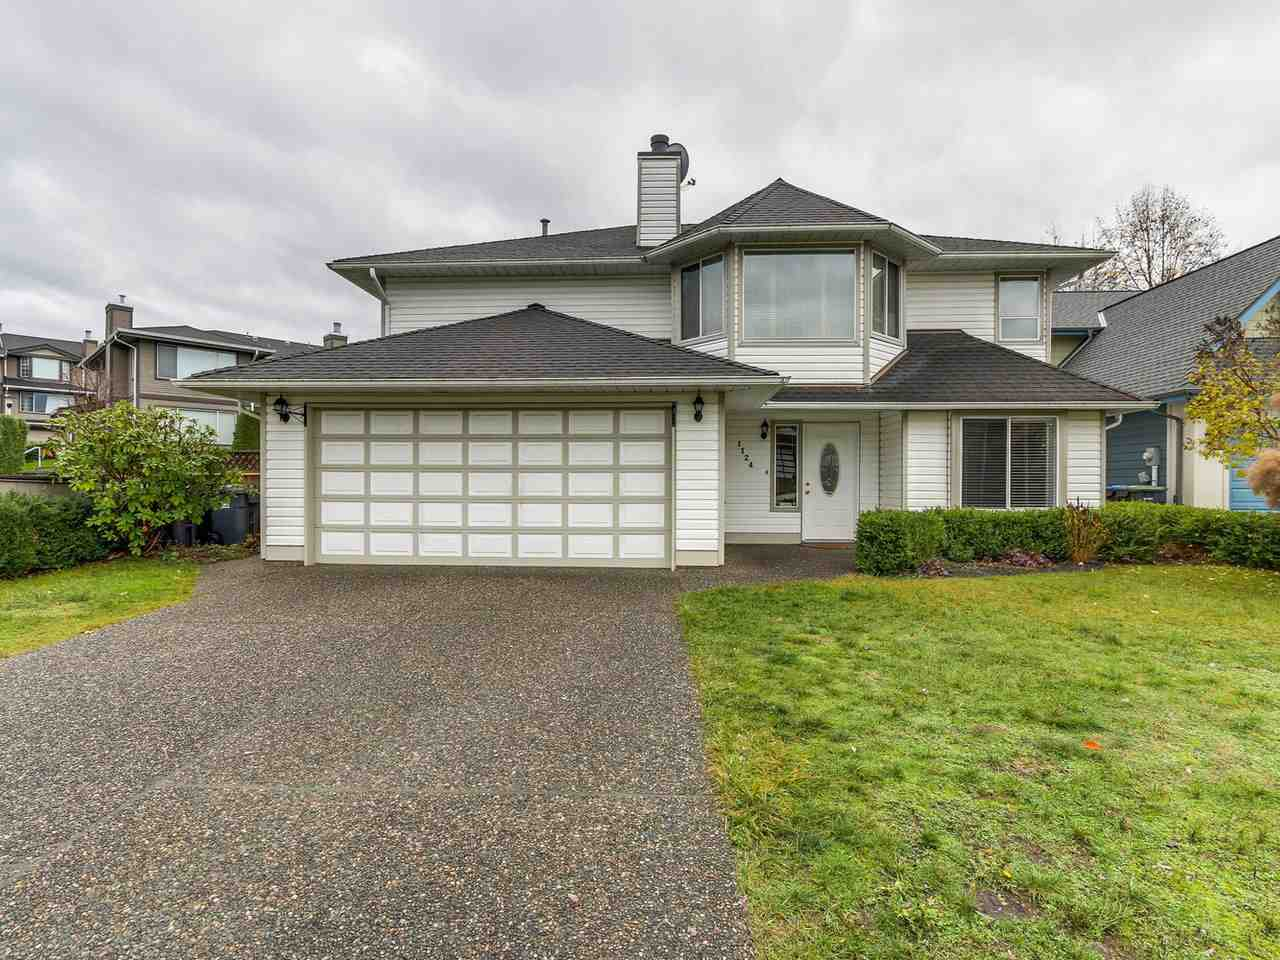 Main Photo: 1124 CASTLE Crescent in Port Coquitlam: Citadel PQ House for sale : MLS® # R2230561